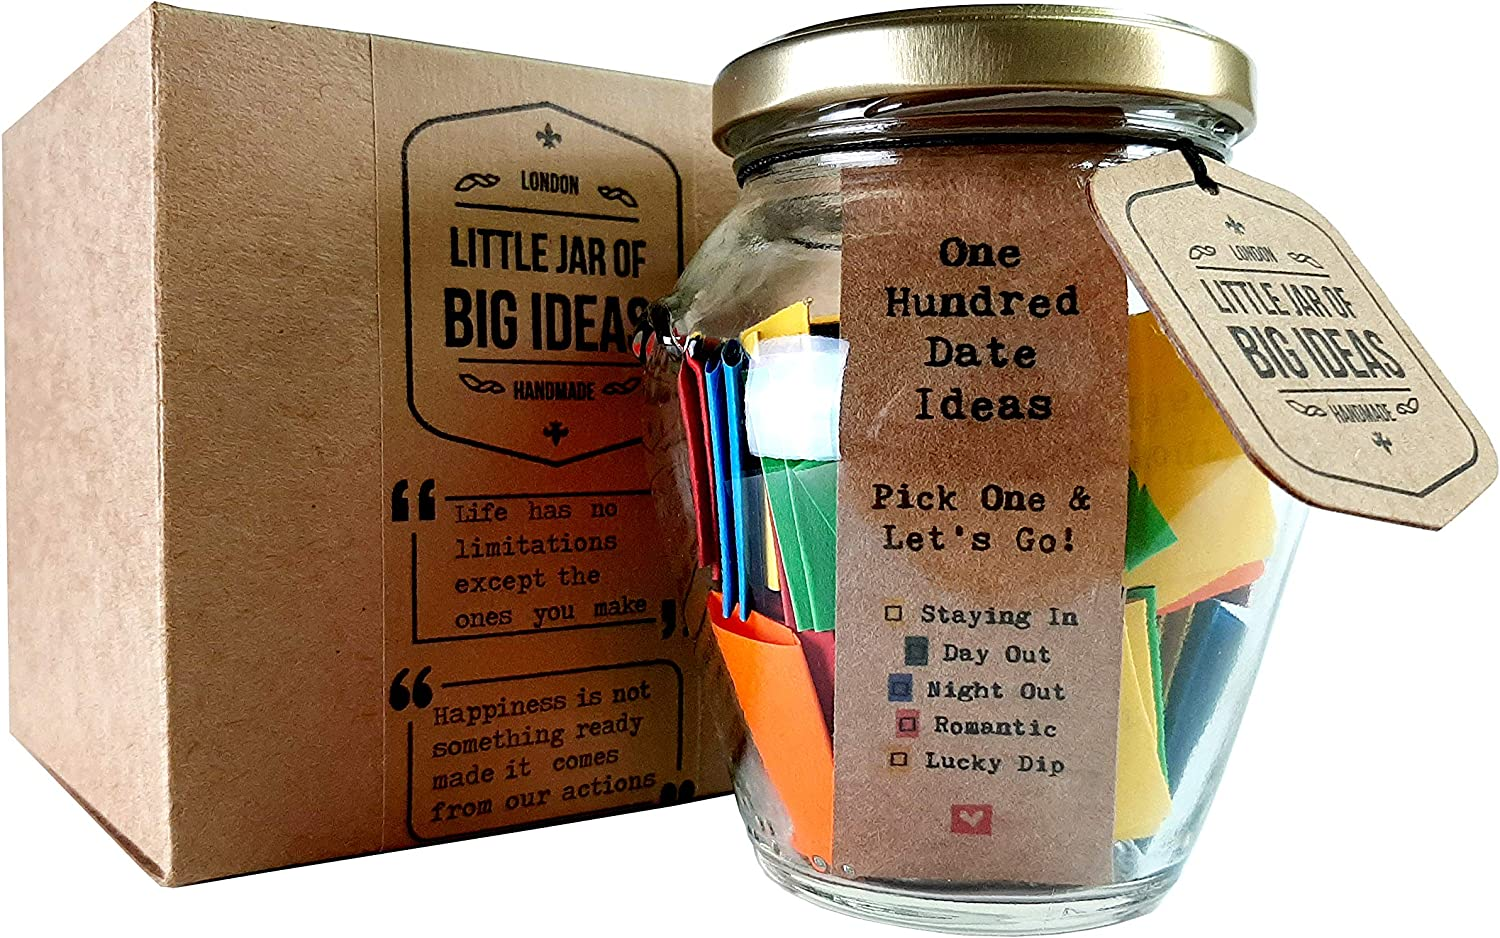 Little Jar Of Big Ideas 100 Date Ideas Pick One Let S Go Unique Thoughtful Gift Memorable Gift Unique Present Artisan Handcrafted Gift Standard Amazon Co Uk Kitchen Home